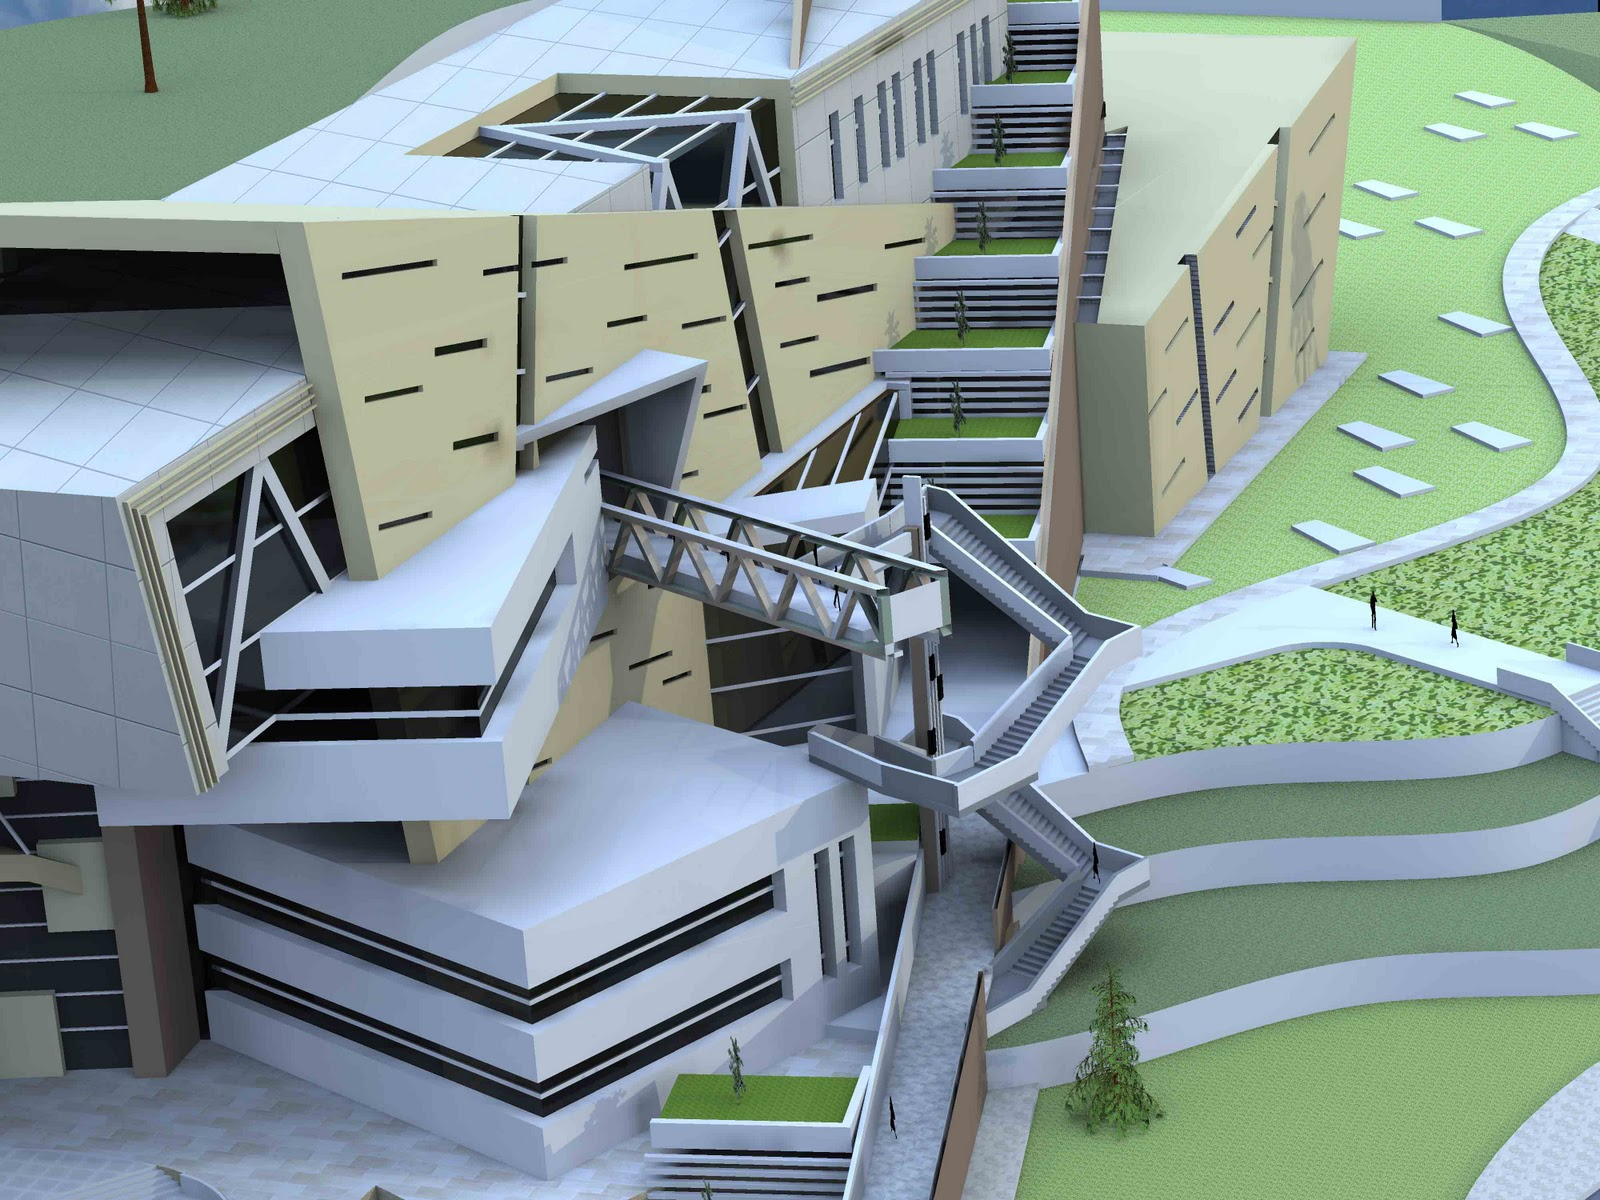 Architectural design projects - College of design construction and planning ...